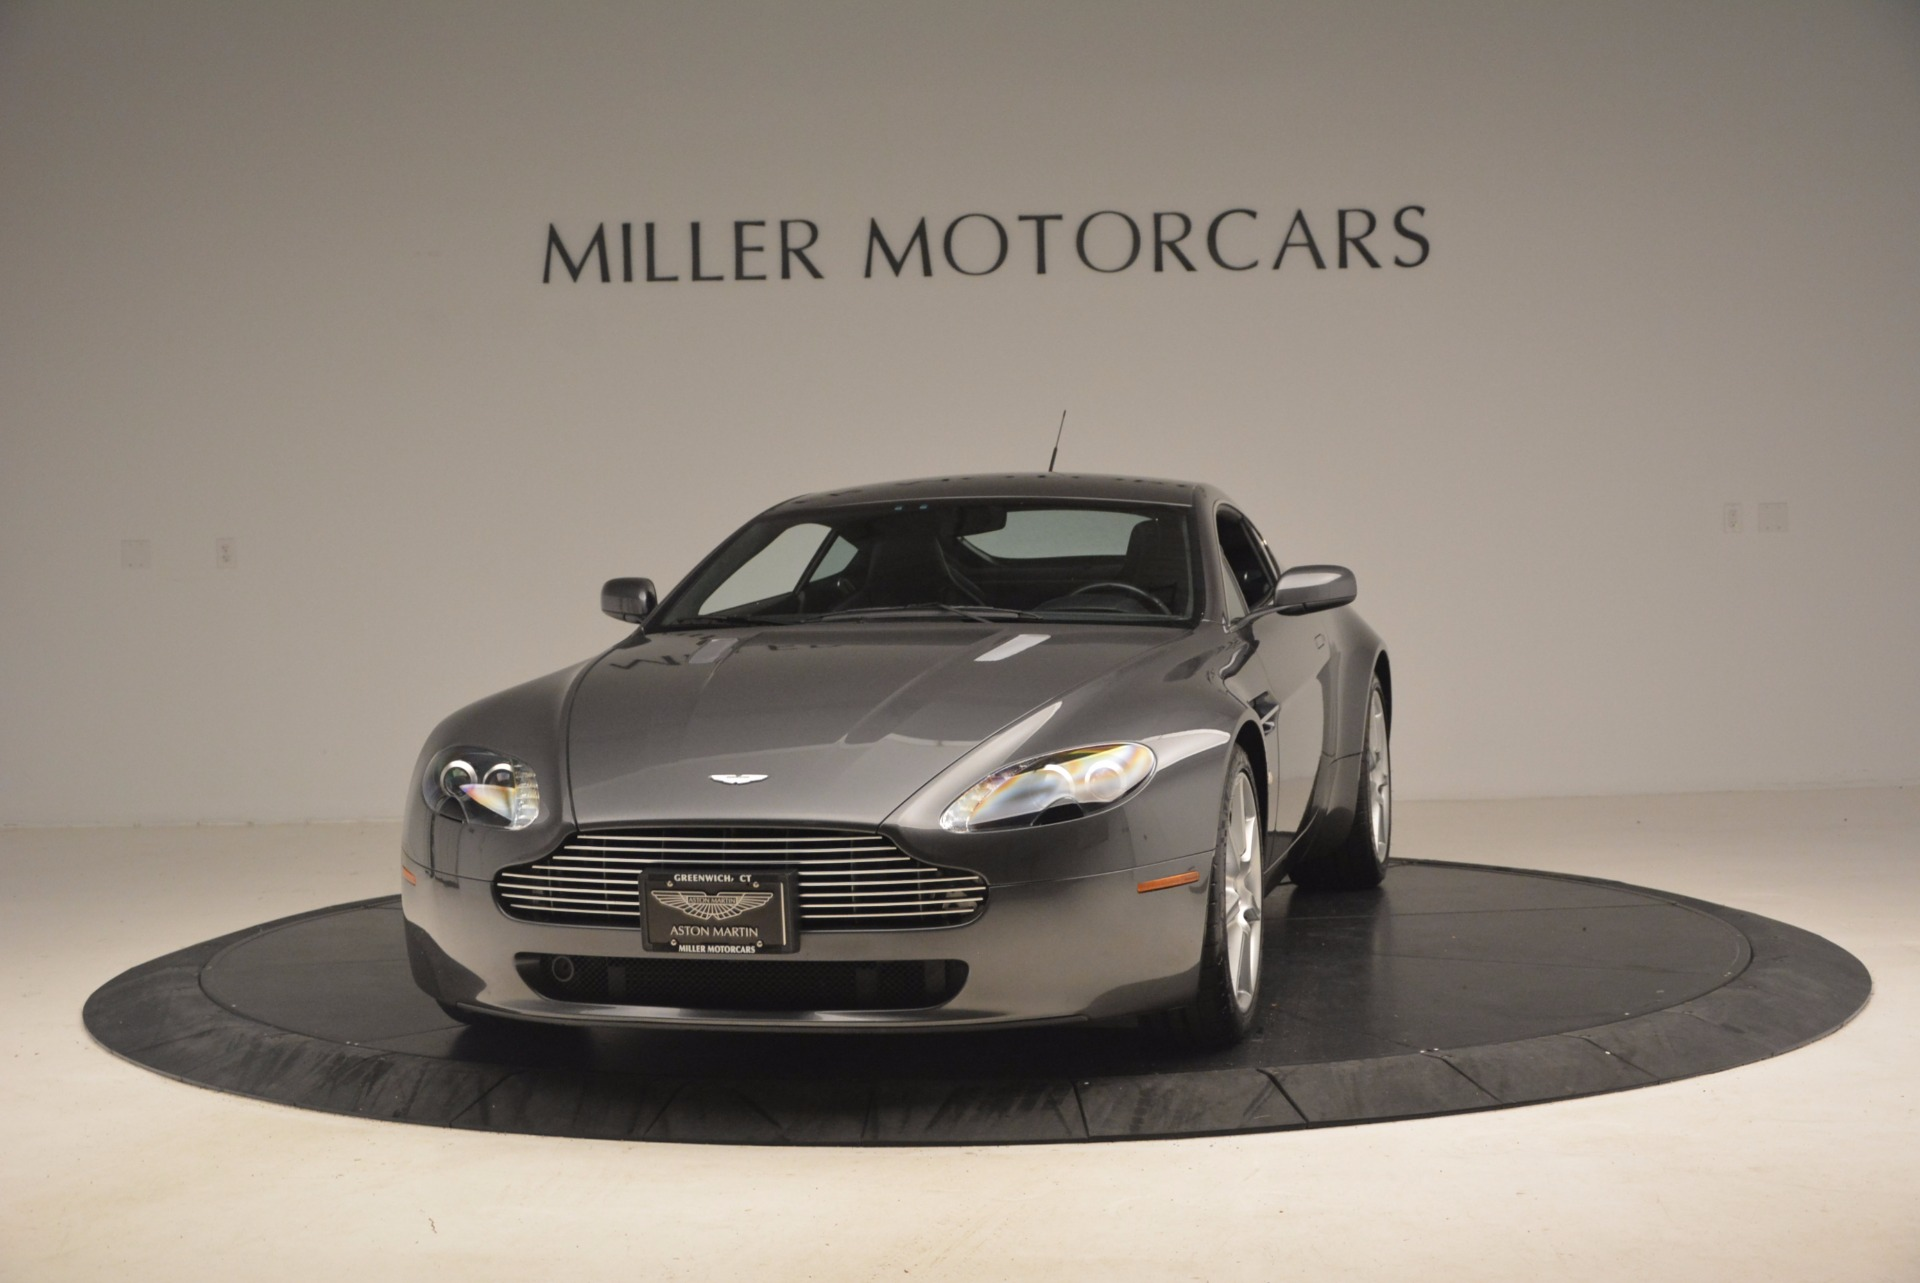 Used 2006 Aston Martin V8 Vantage Coupe for sale Sold at Maserati of Westport in Westport CT 06880 1